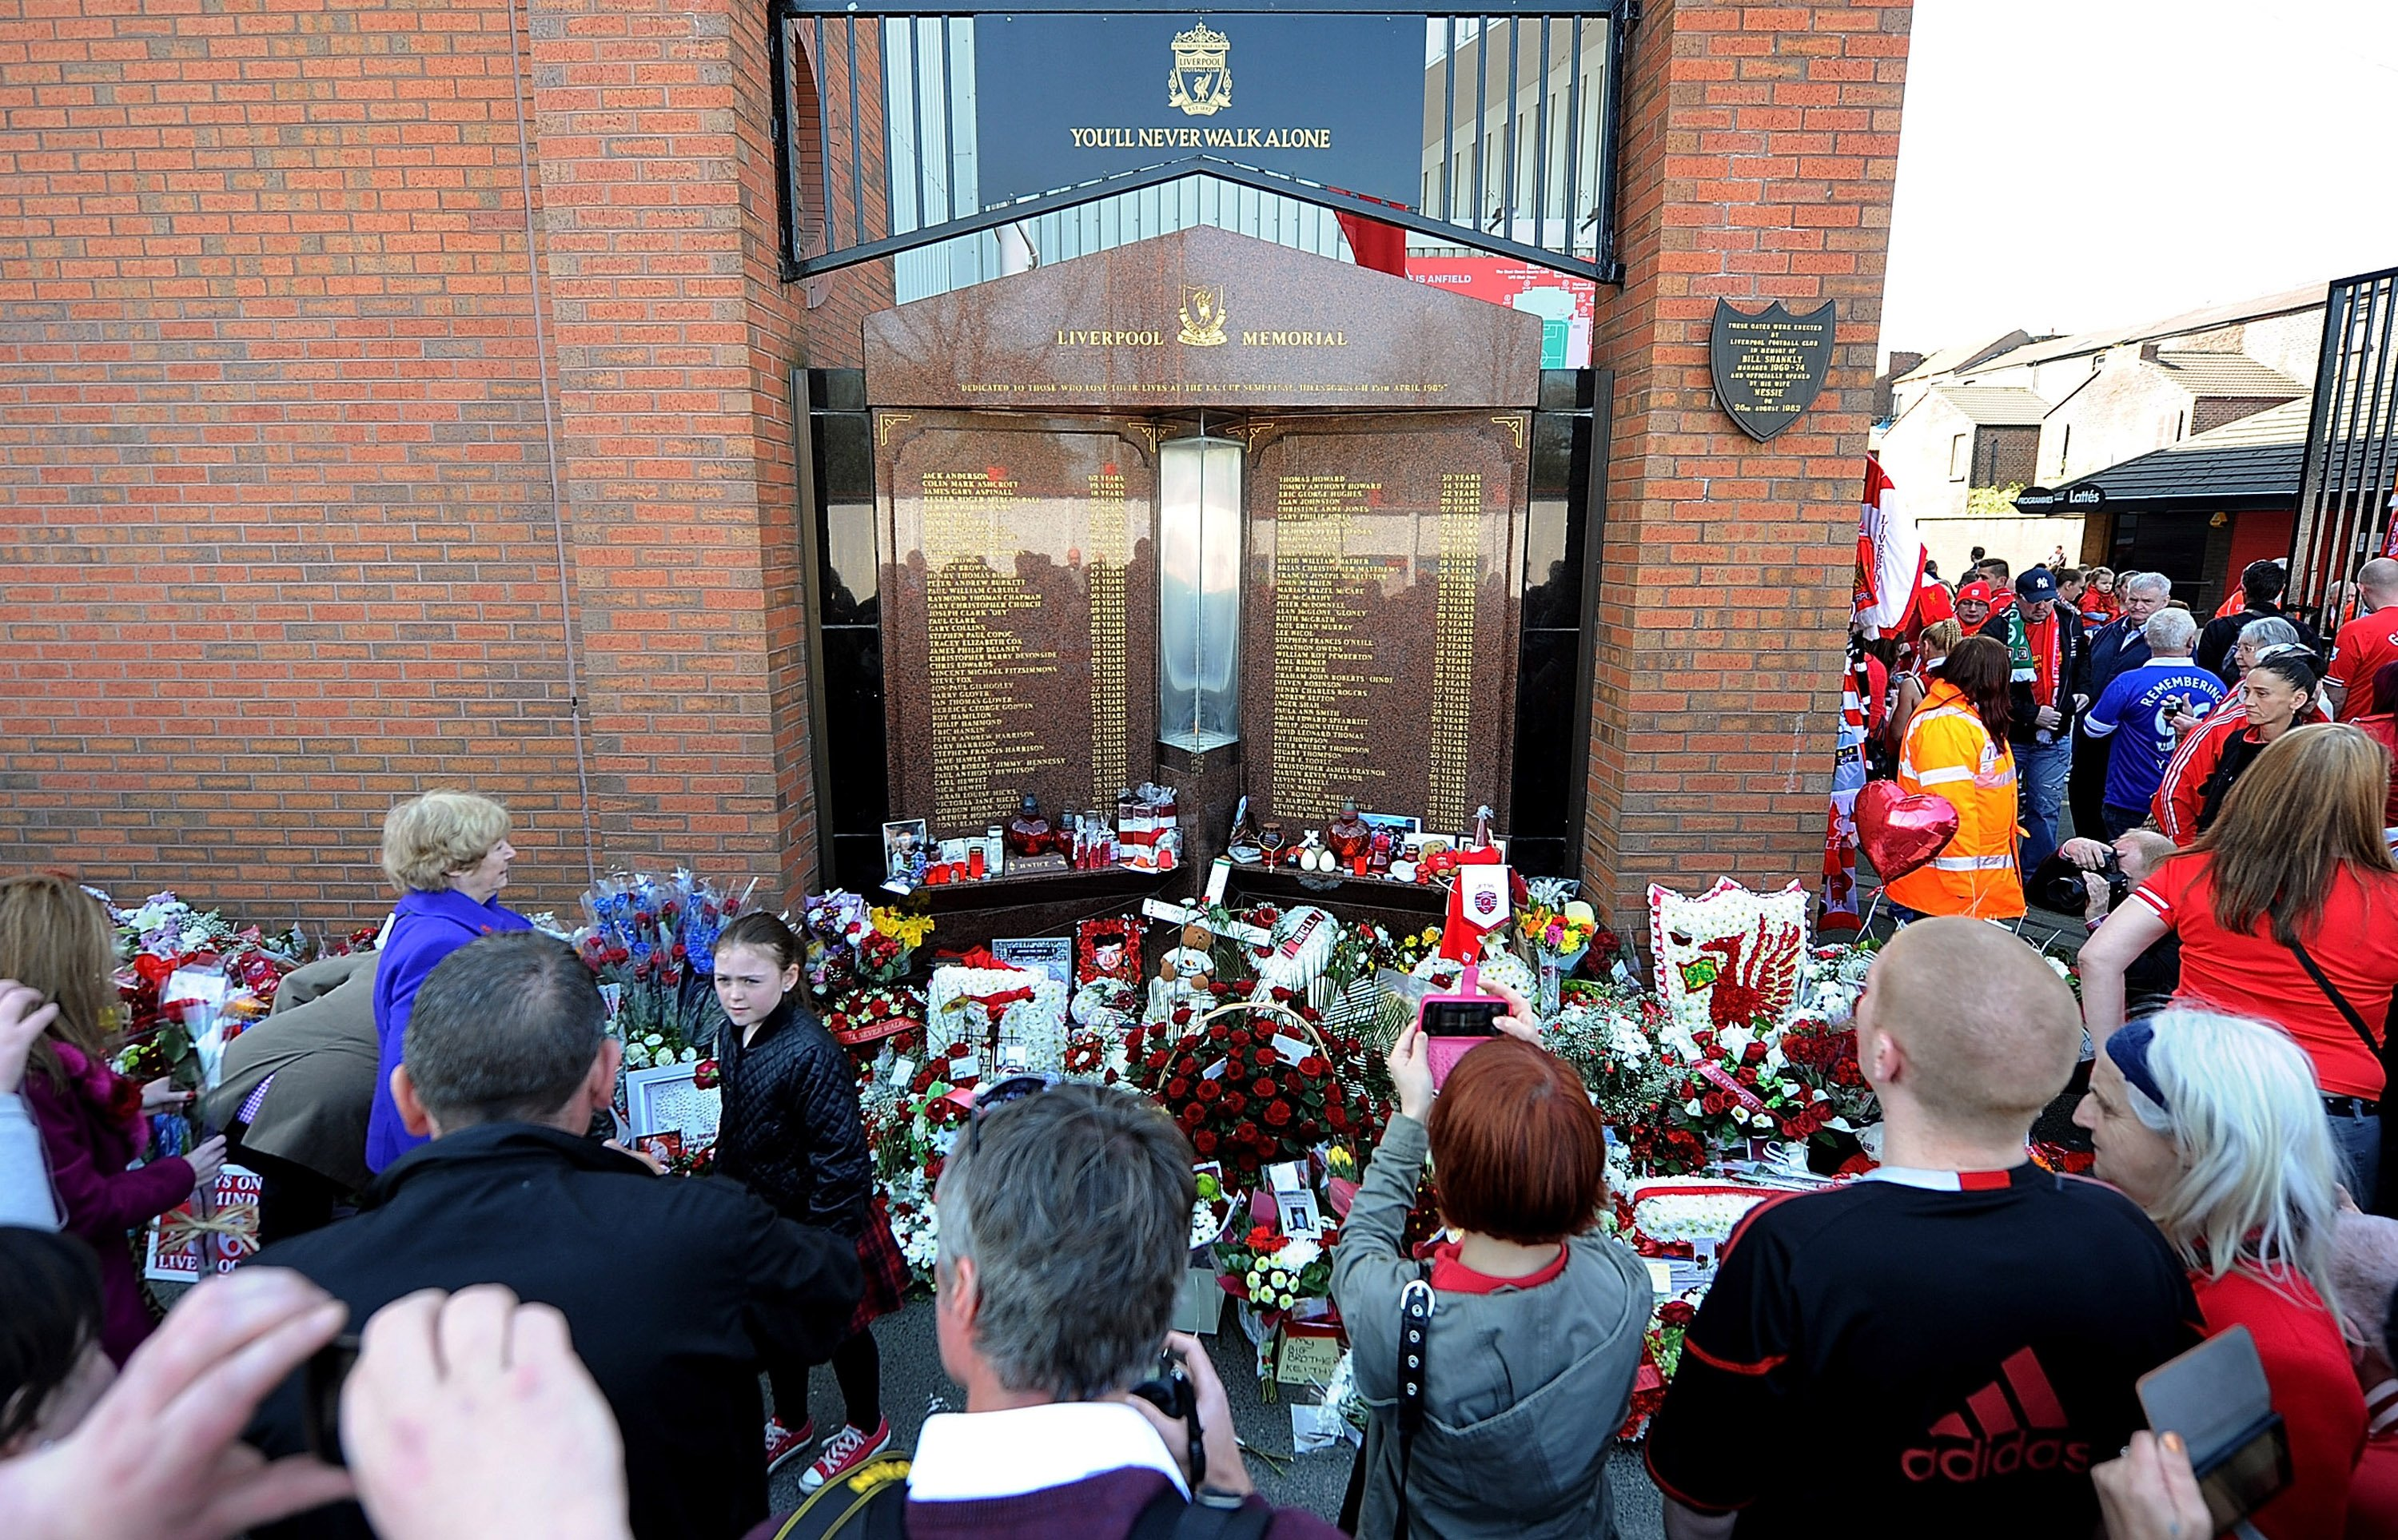 Fans gather at the Hillsborough memorial during the memorial service marking the 25th anniversary of the Hillsborough Disaster, at Anfield Stadium on April 15, 2014 in Liverpool, England. | Source: Getty Images